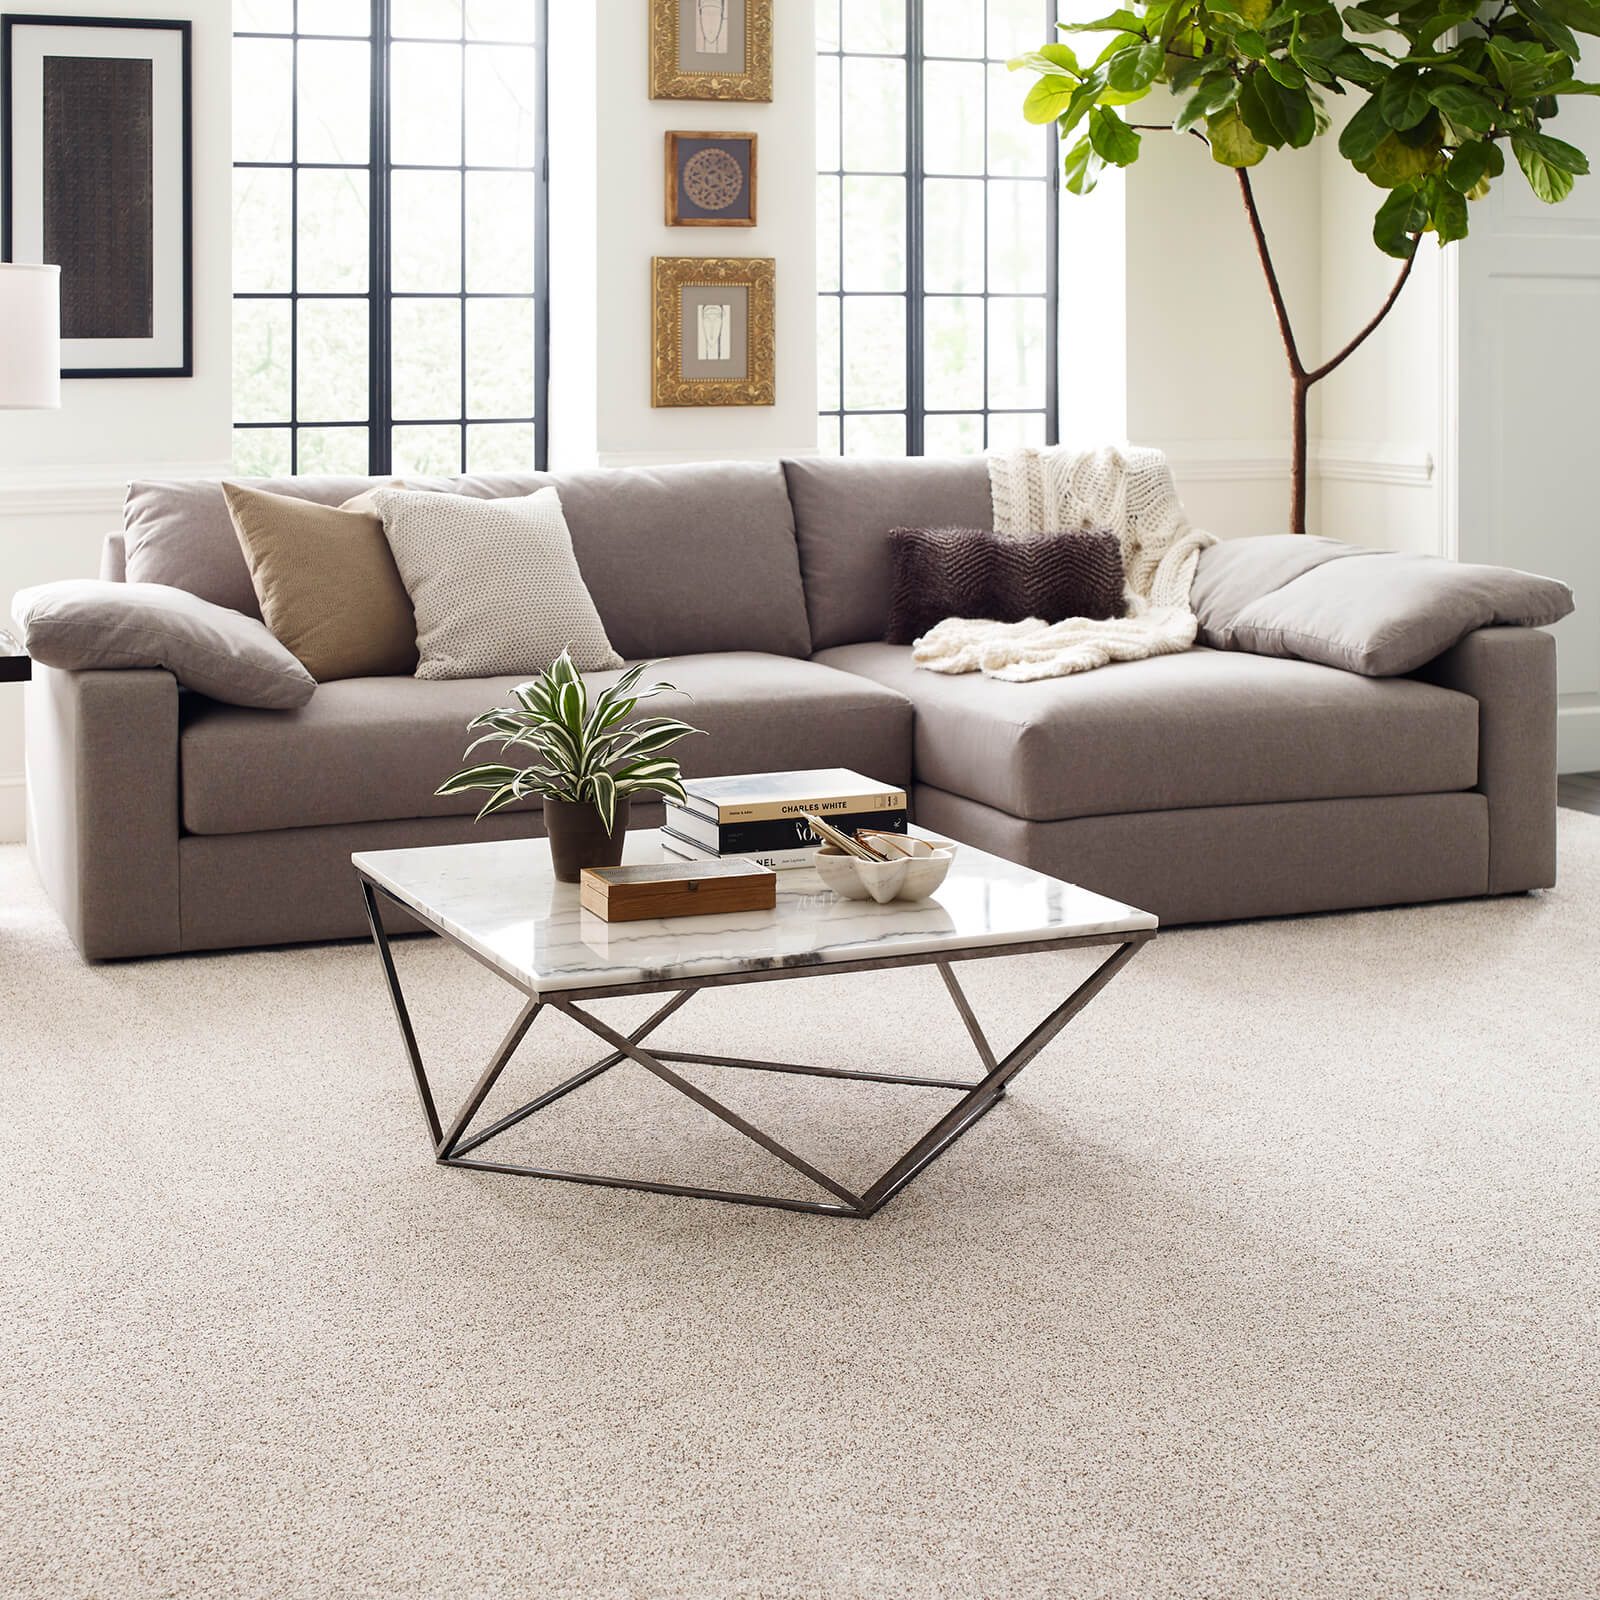 Carpet in living room | Georgia Flooring